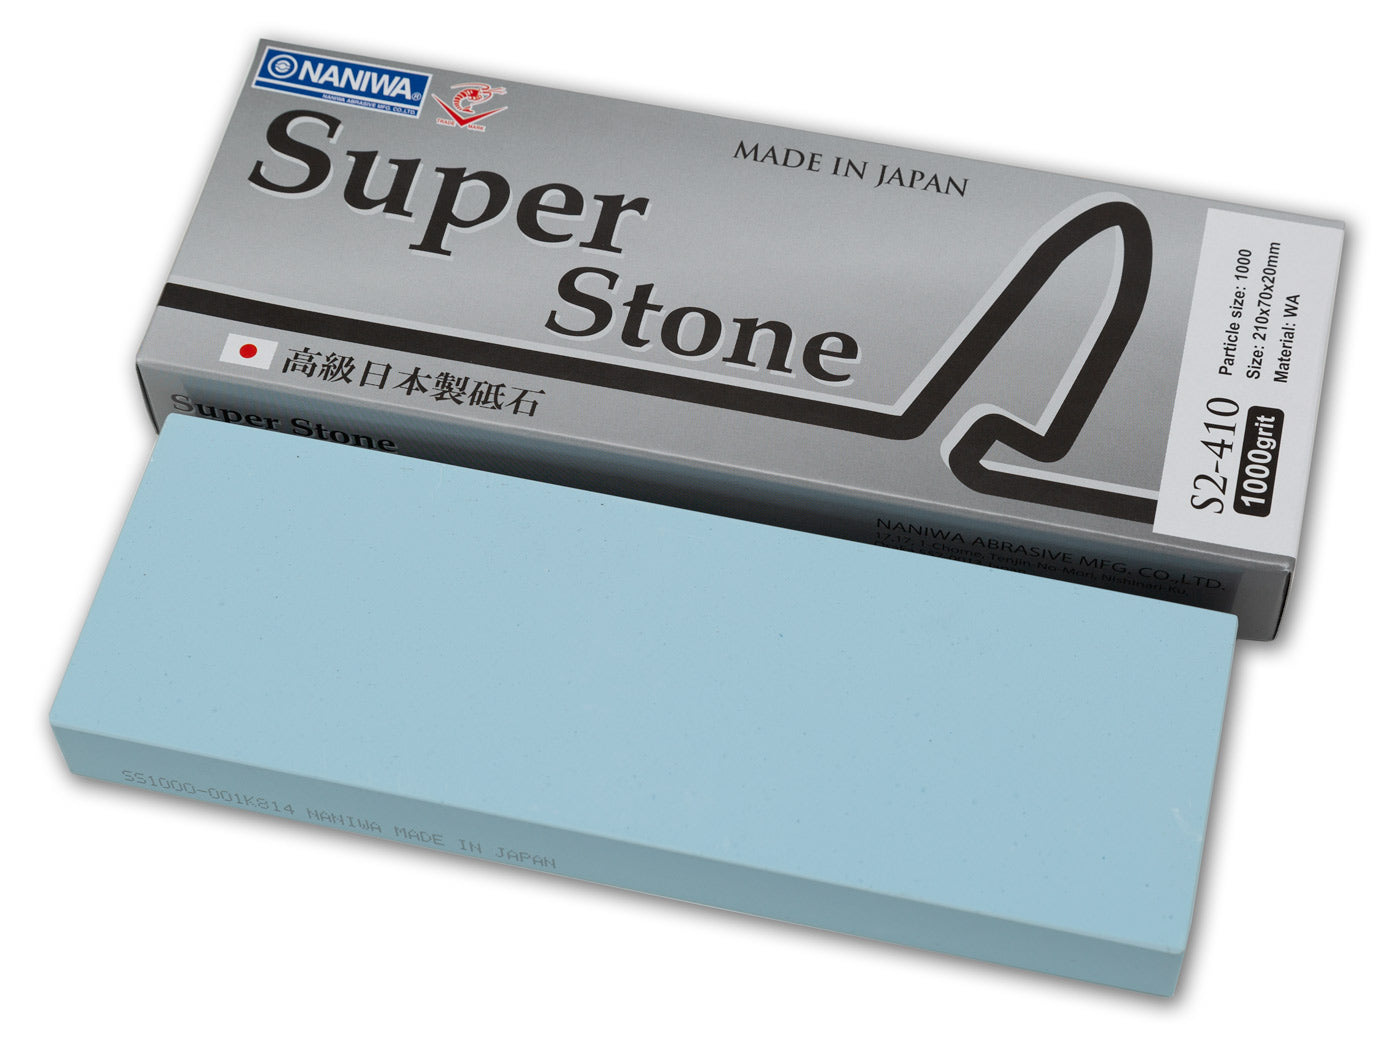 Naniwa Super-Stone Japanese Whetstone Sharpening Stone, 1000 grit